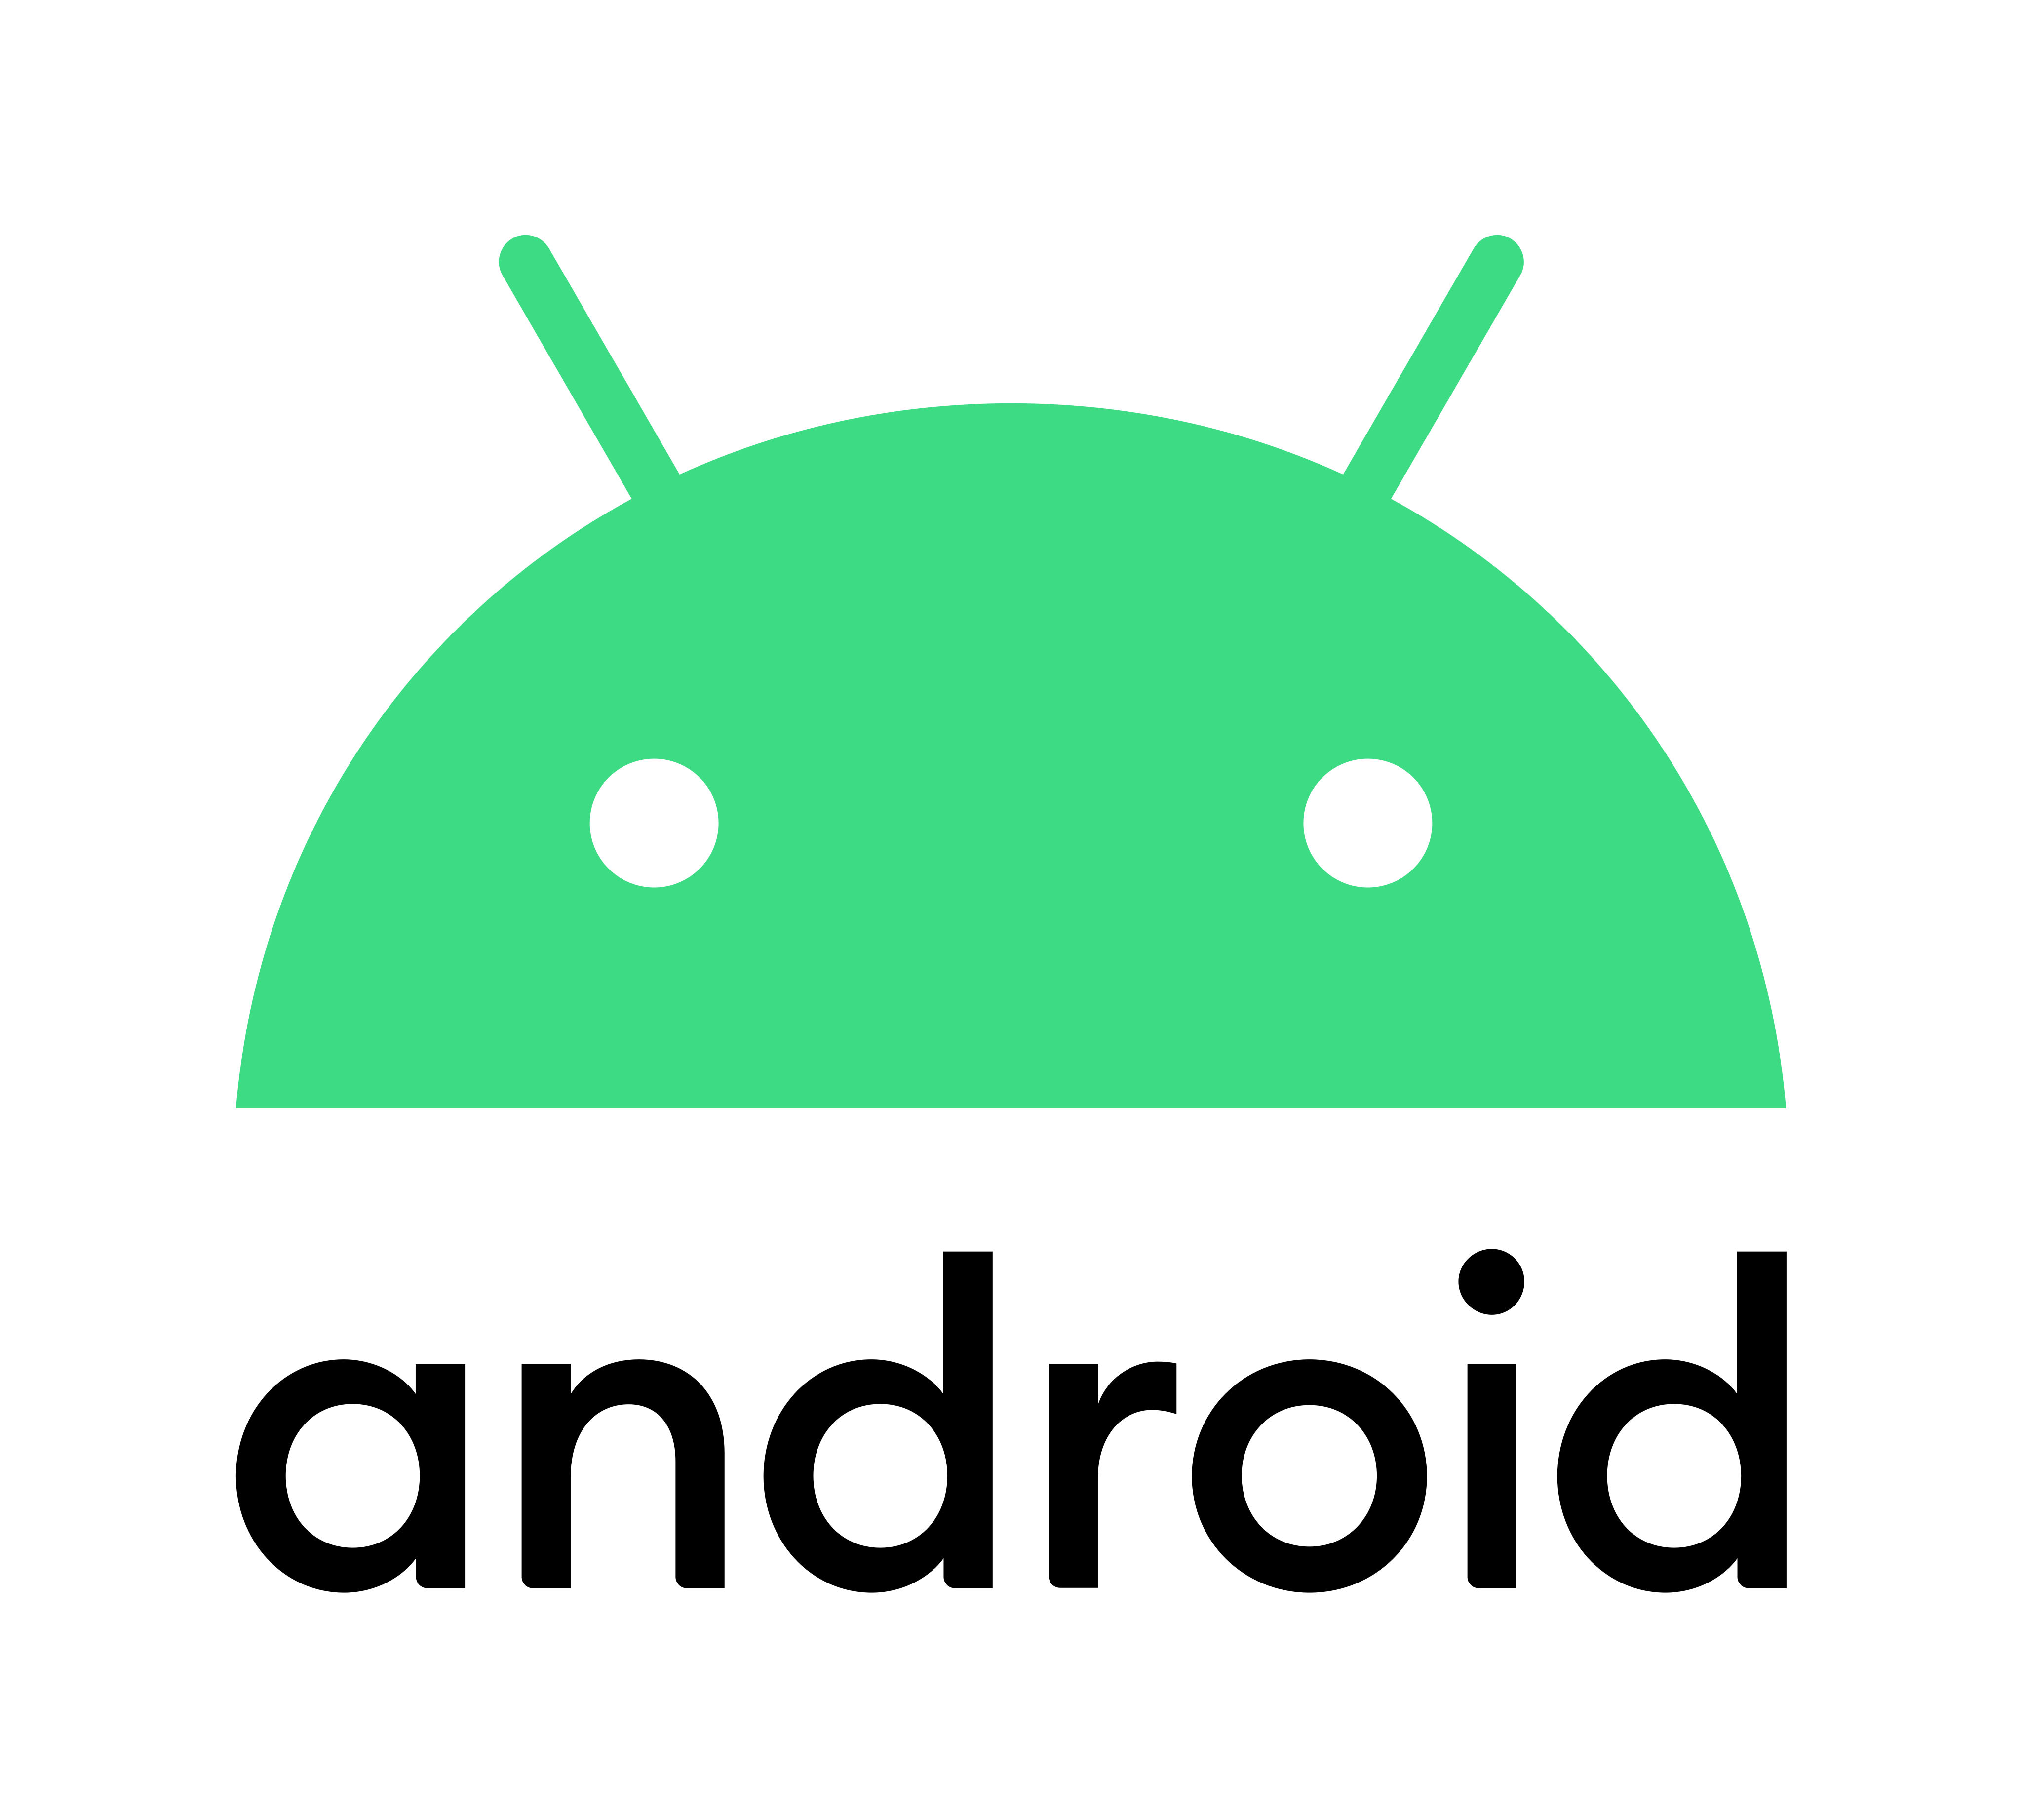 android logo 1 2 - Android Logo